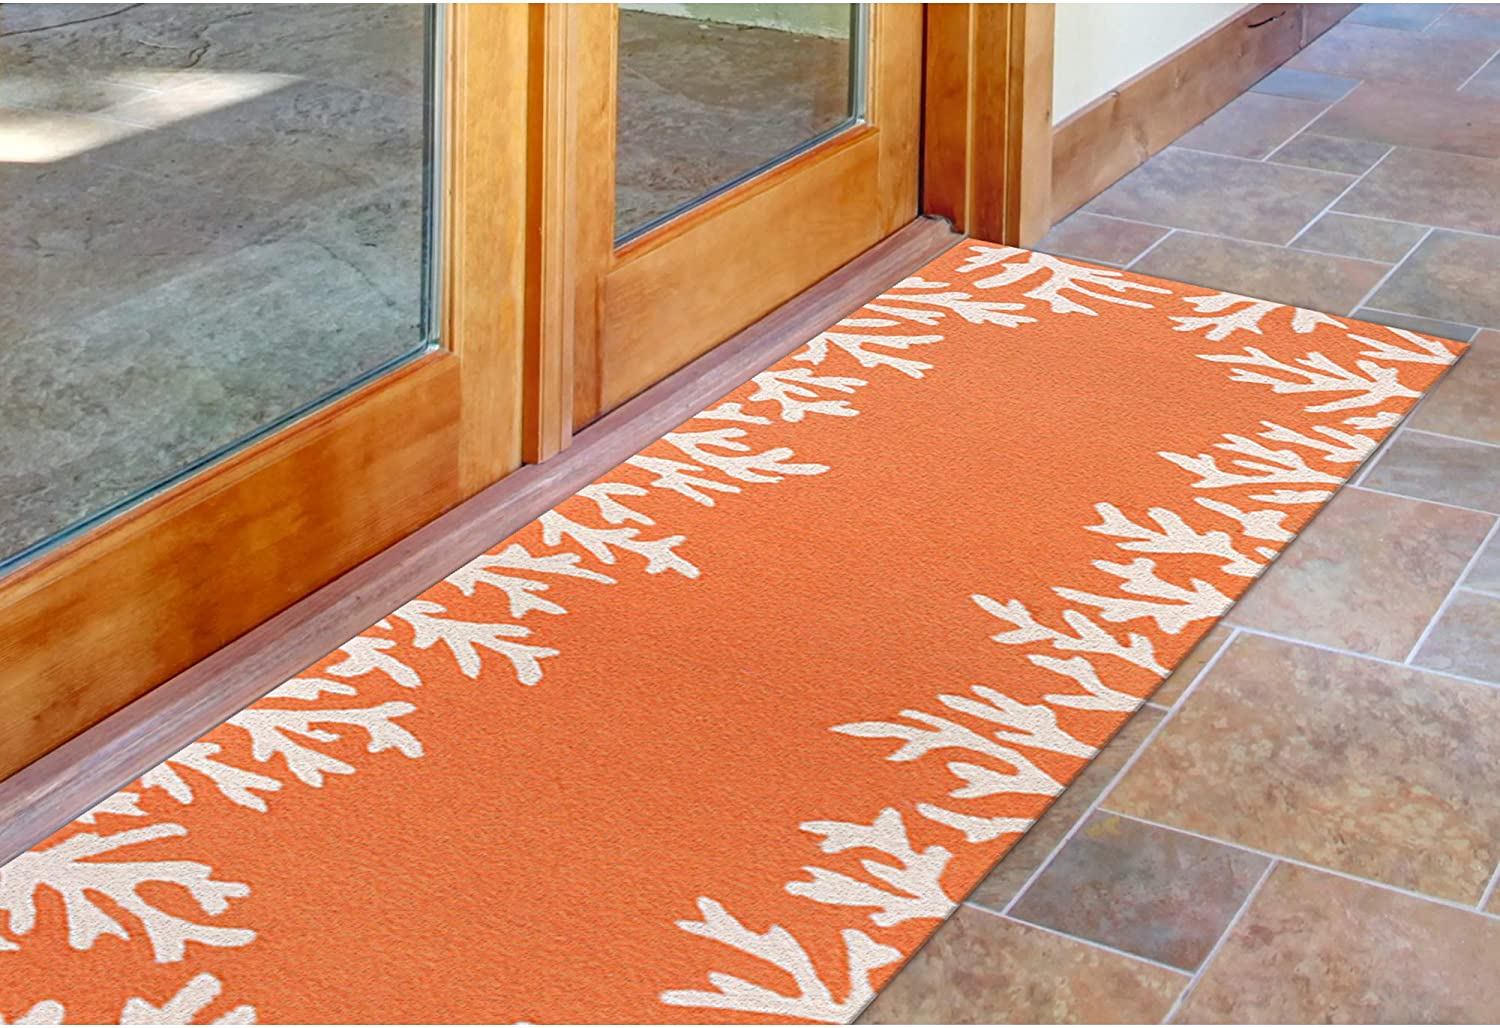 Liora Manne Monaco Shell Border Rug Indoor Outdoor 24 by 8' Coral